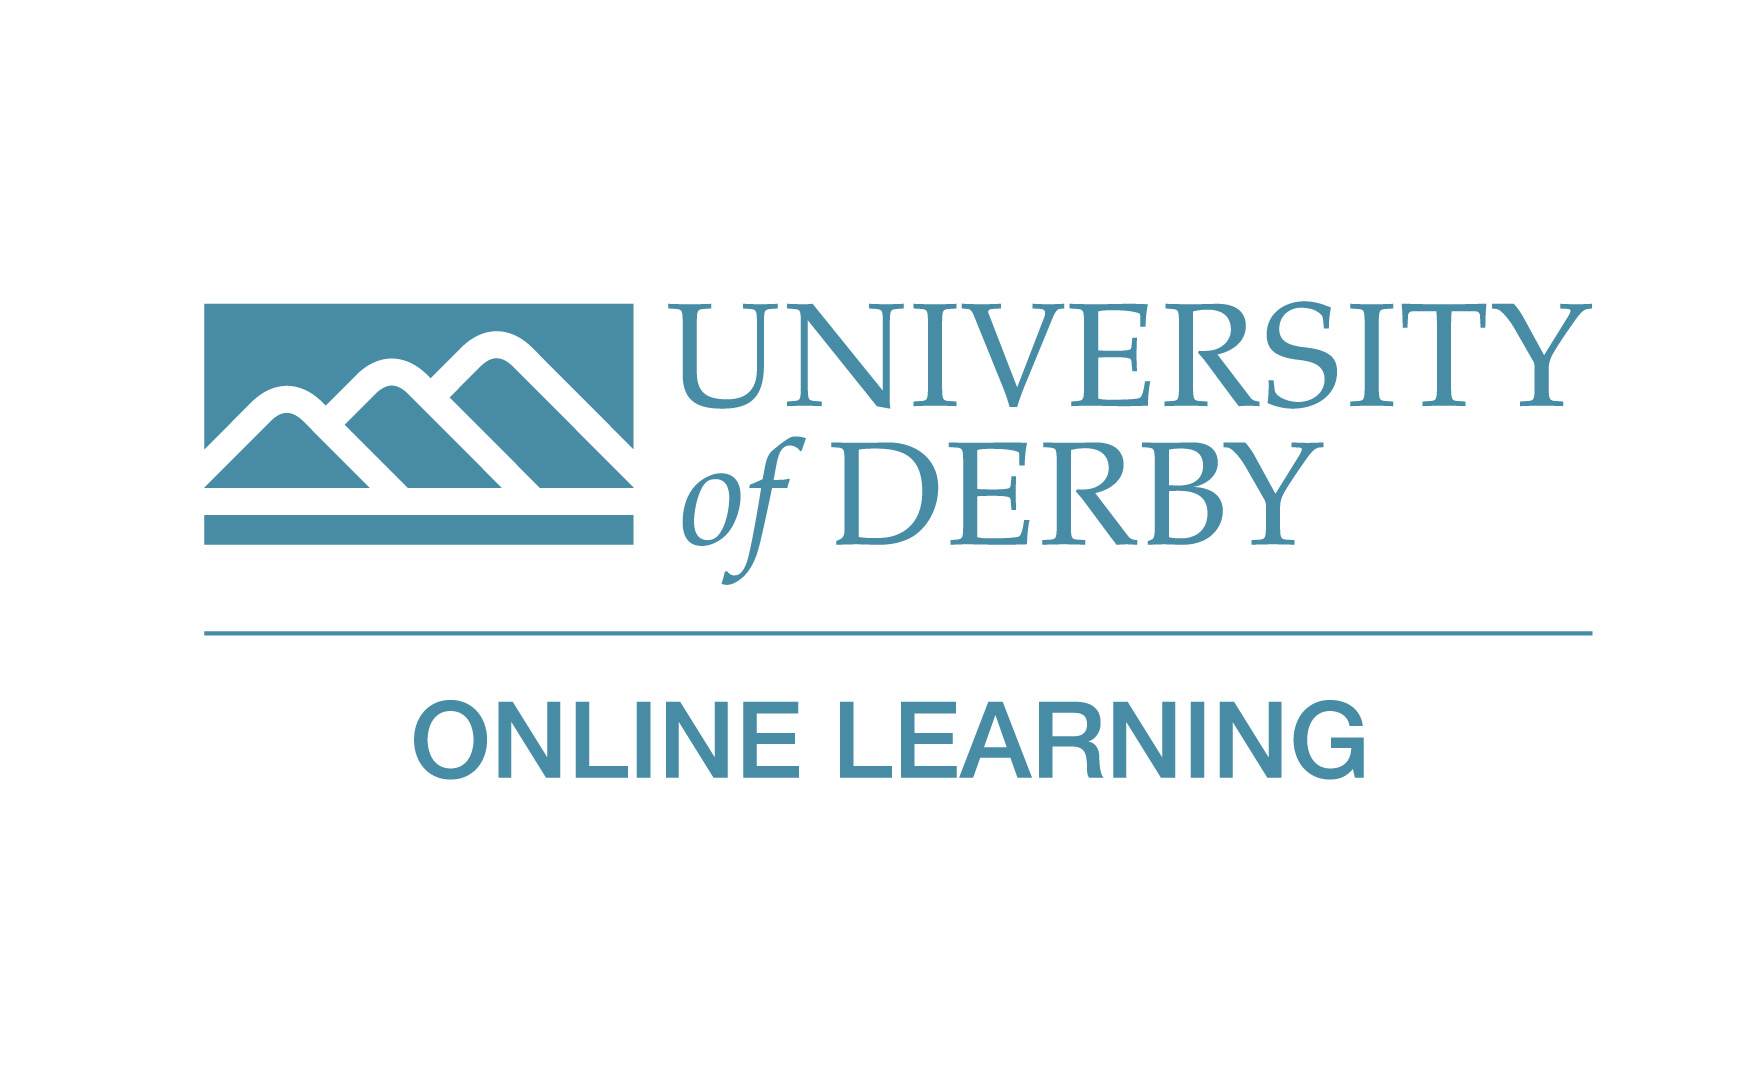 Interview with the University of Derby Online Learning